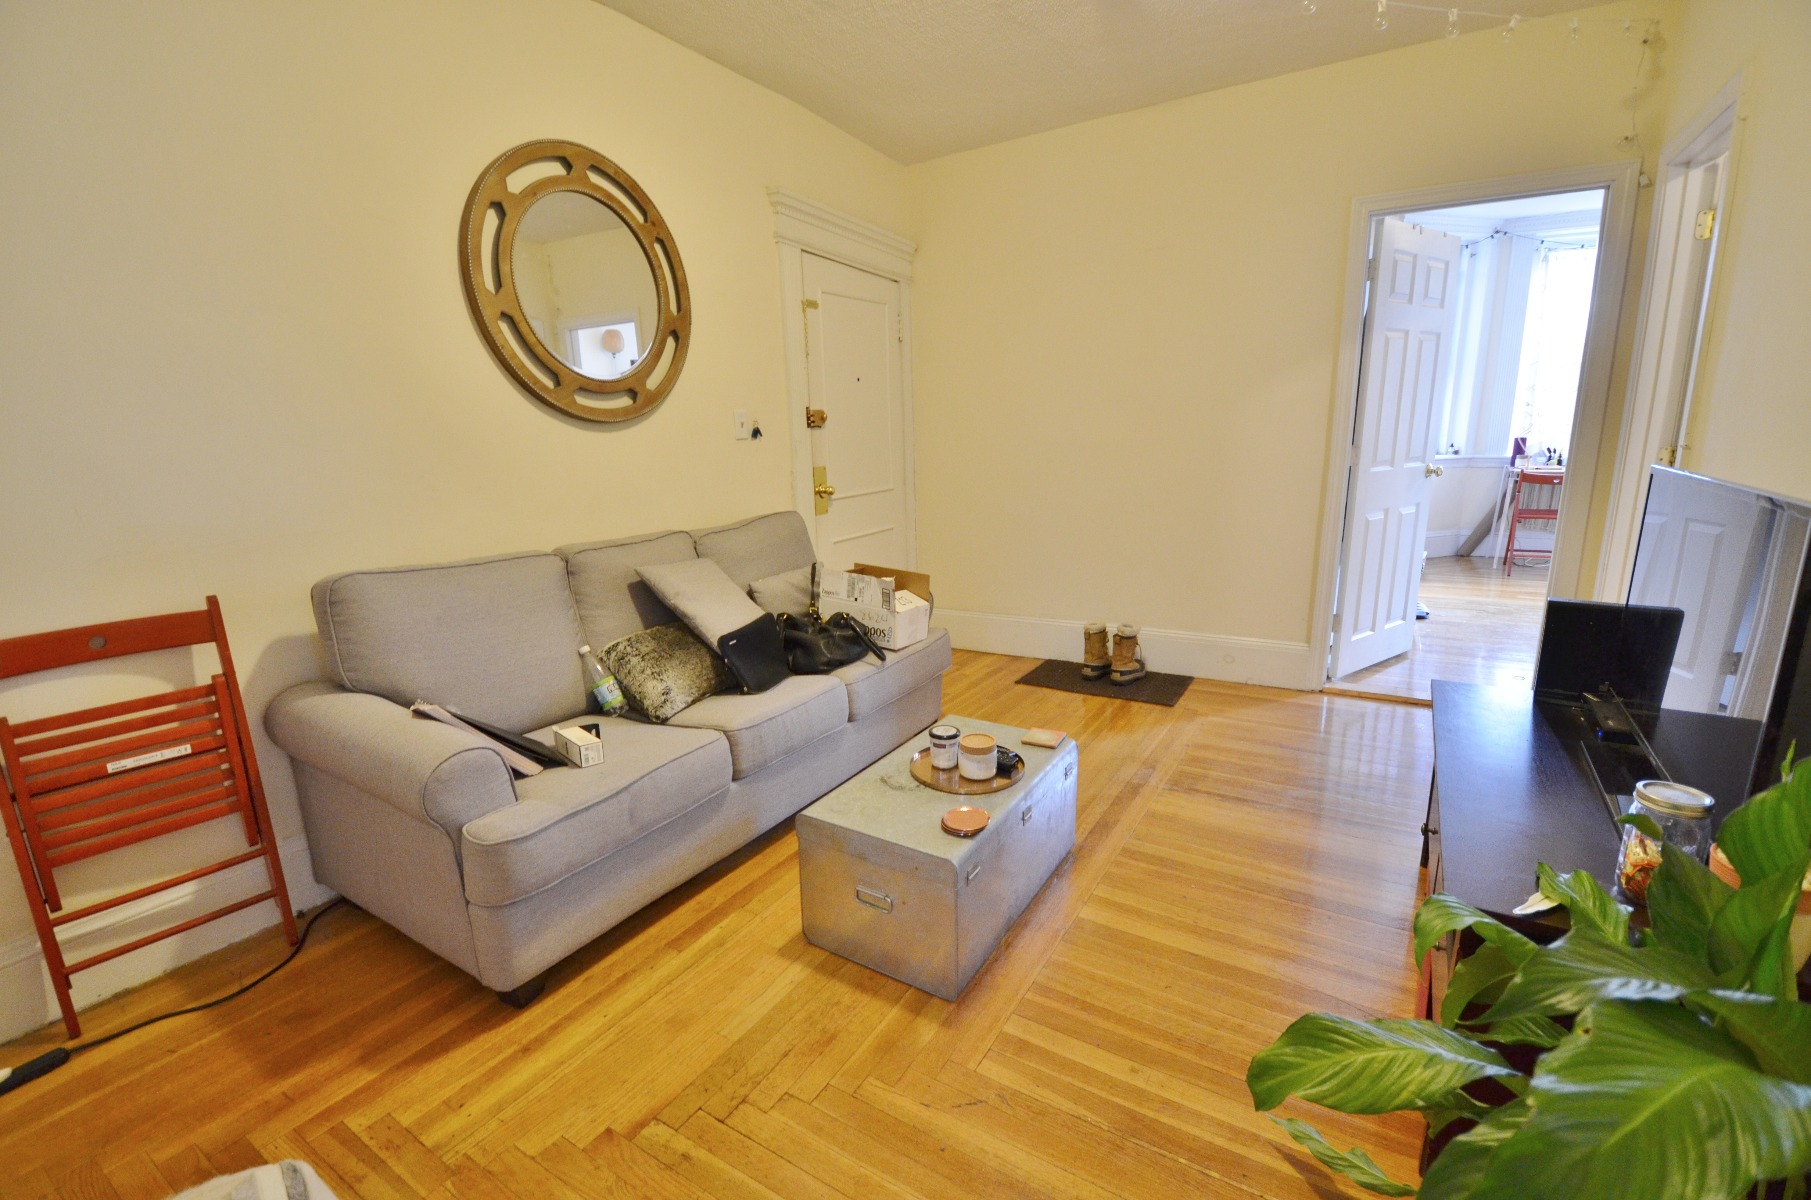 Avail 9/1 - Super LARGE 2Bed-CLose to WIT, Simmons, MCPH